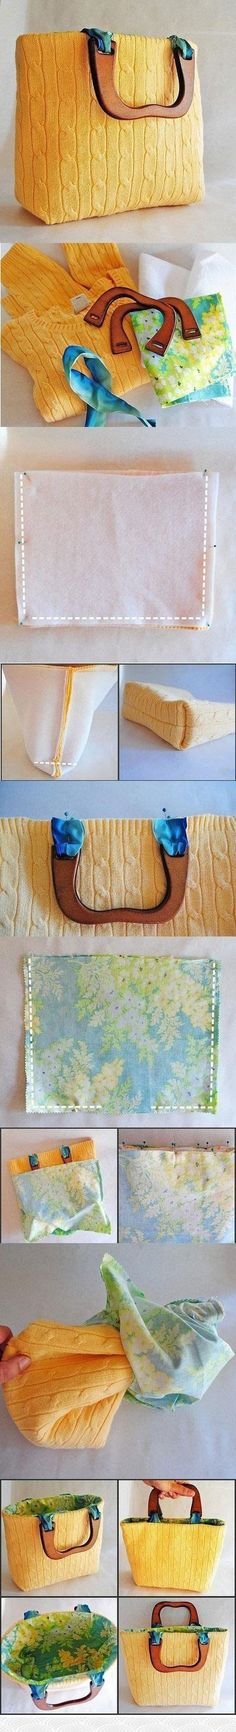 DIY Hand Bag hand bag diy crafts home made easy crafts craft idea crafts ideas diy ideas diy crafts diy idea do it yourself diy projects diy craft handmade diy purse